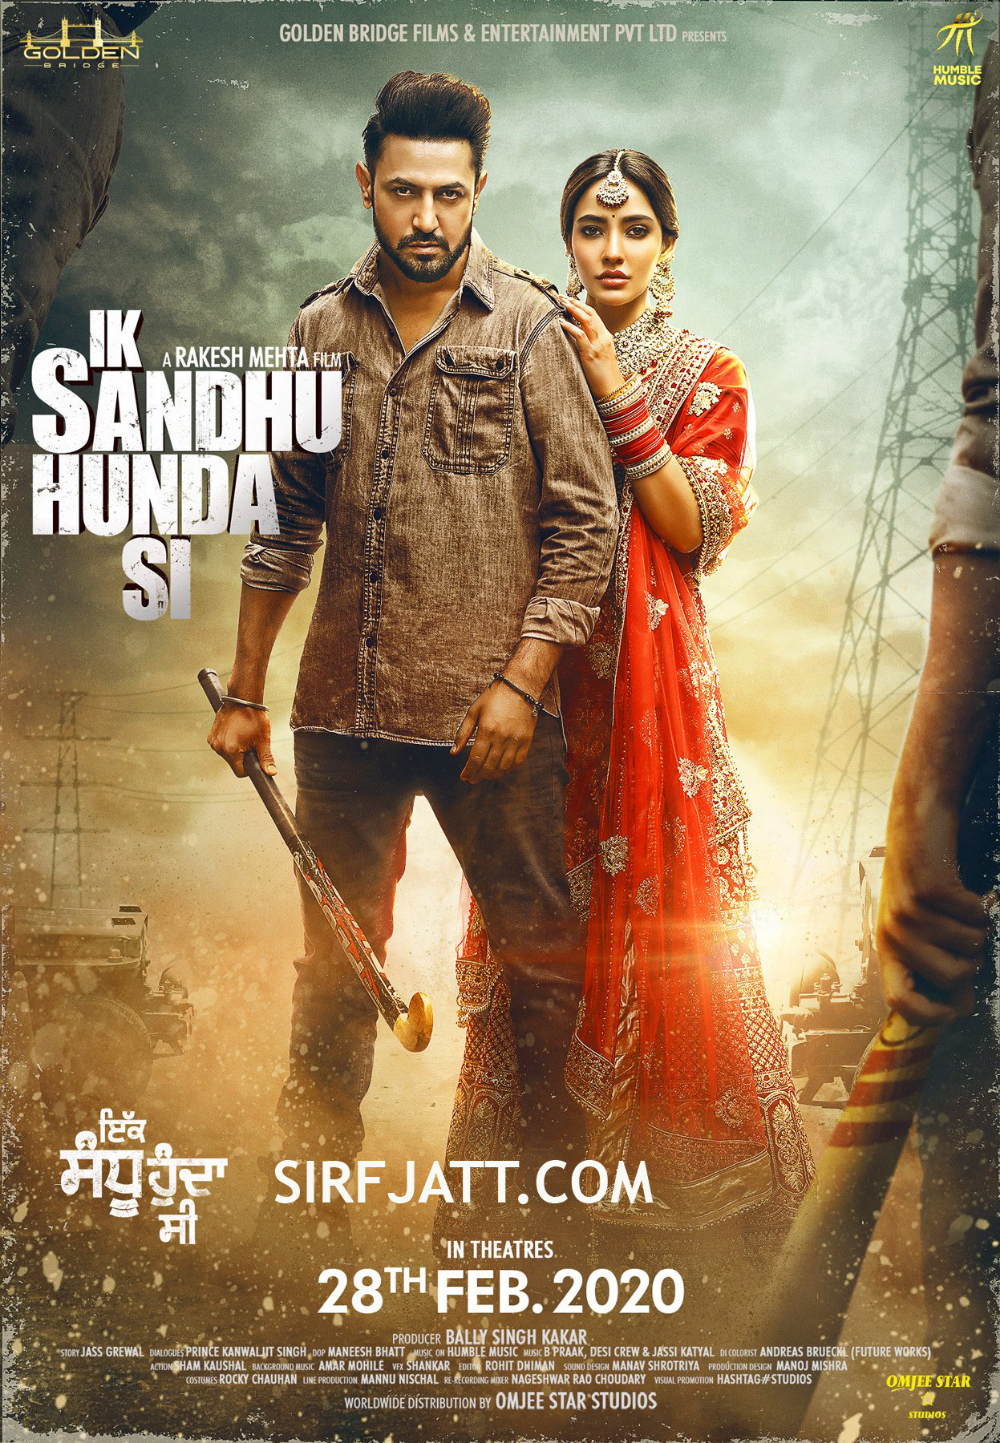 Ik Sandhu Hunda Si Full Album Gippy Grewal Mp3 Songs Download Sirfjatt Com In 2020 Full Movies Download Full Movies Hd Movies